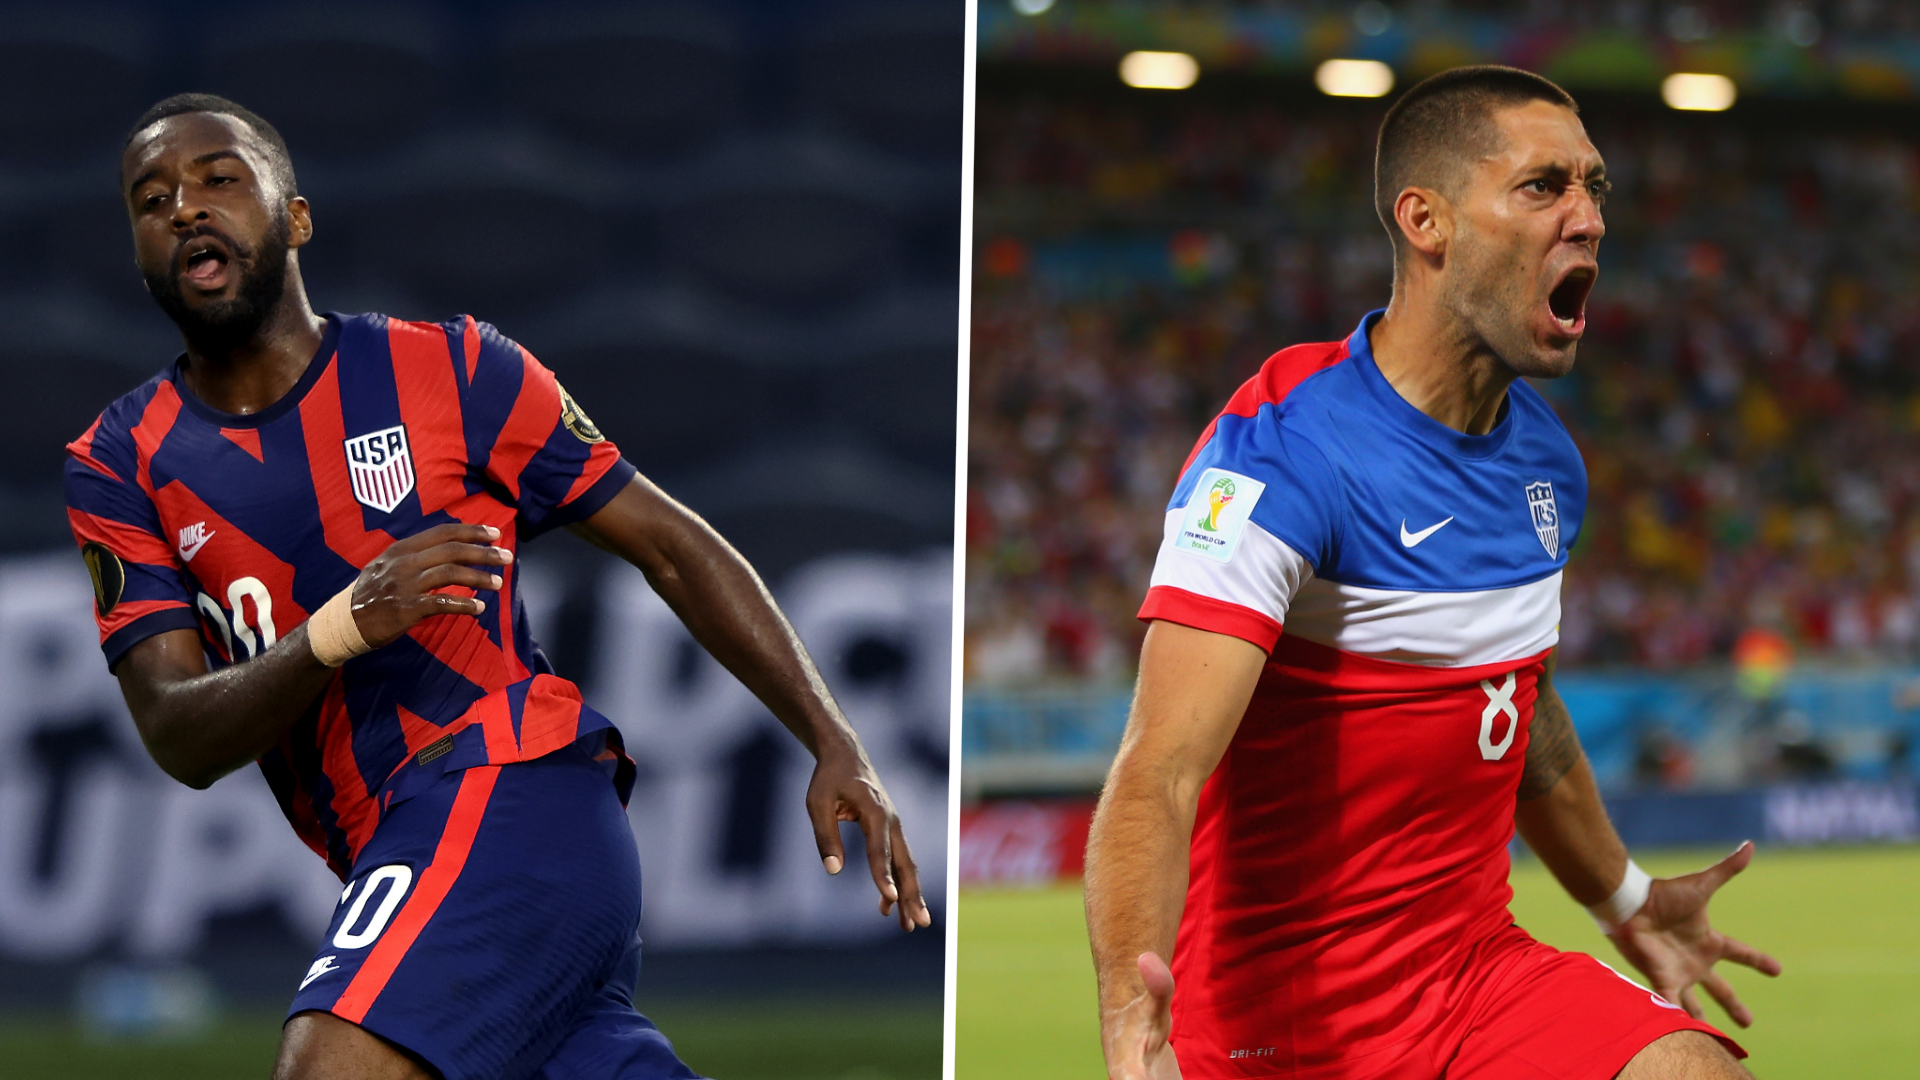 Moore eclipses Dempsey to score fastest goal in USMNT history